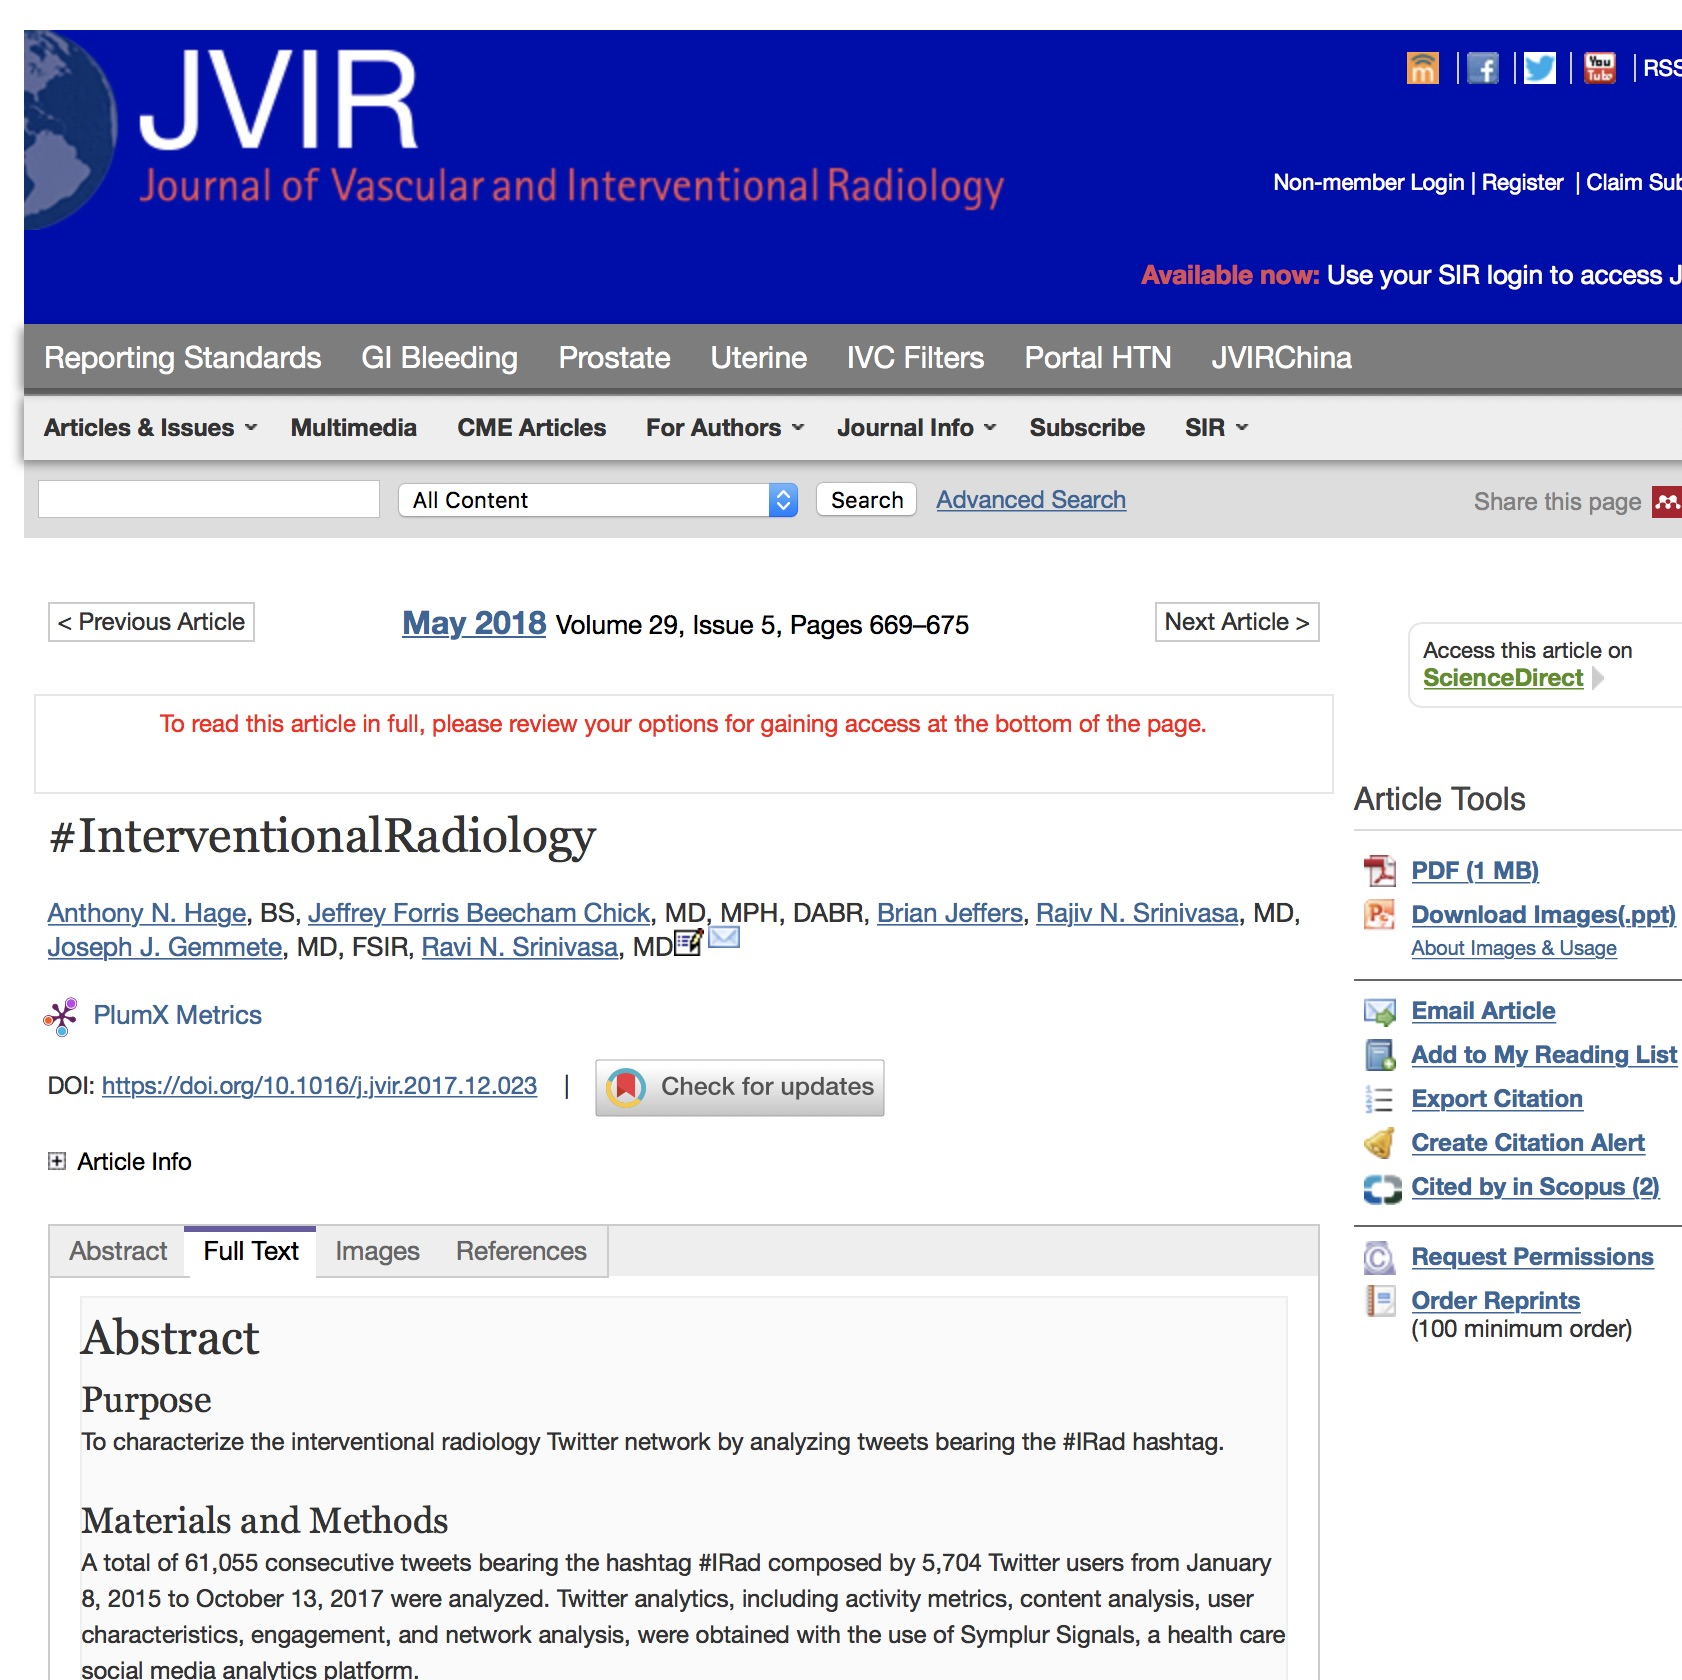 A healthcare social media research article published in Journal of Vascular and Interventional Radiology, January 26, 2018